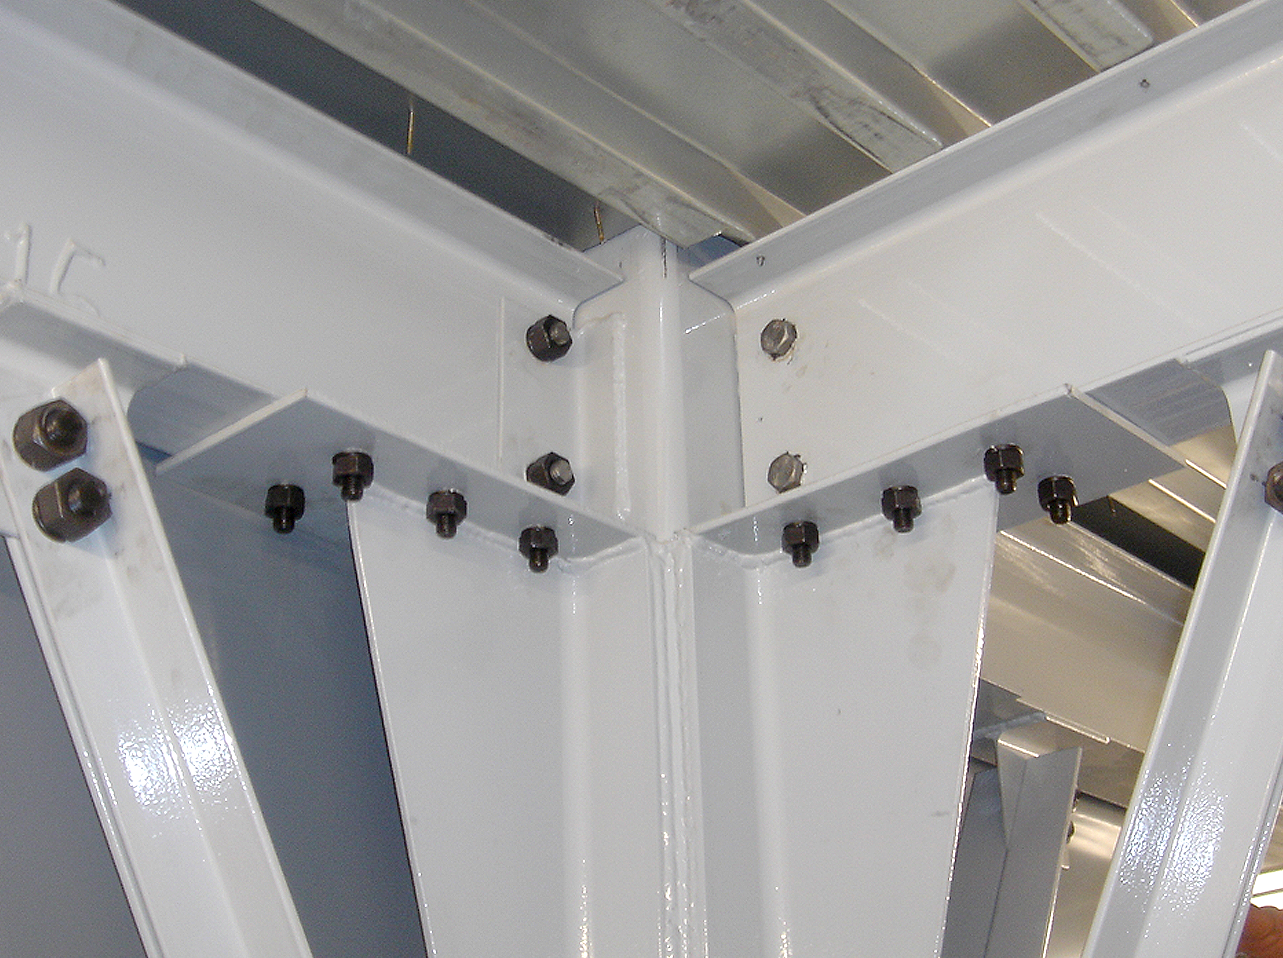 WPSS Mezzanine bolted connections